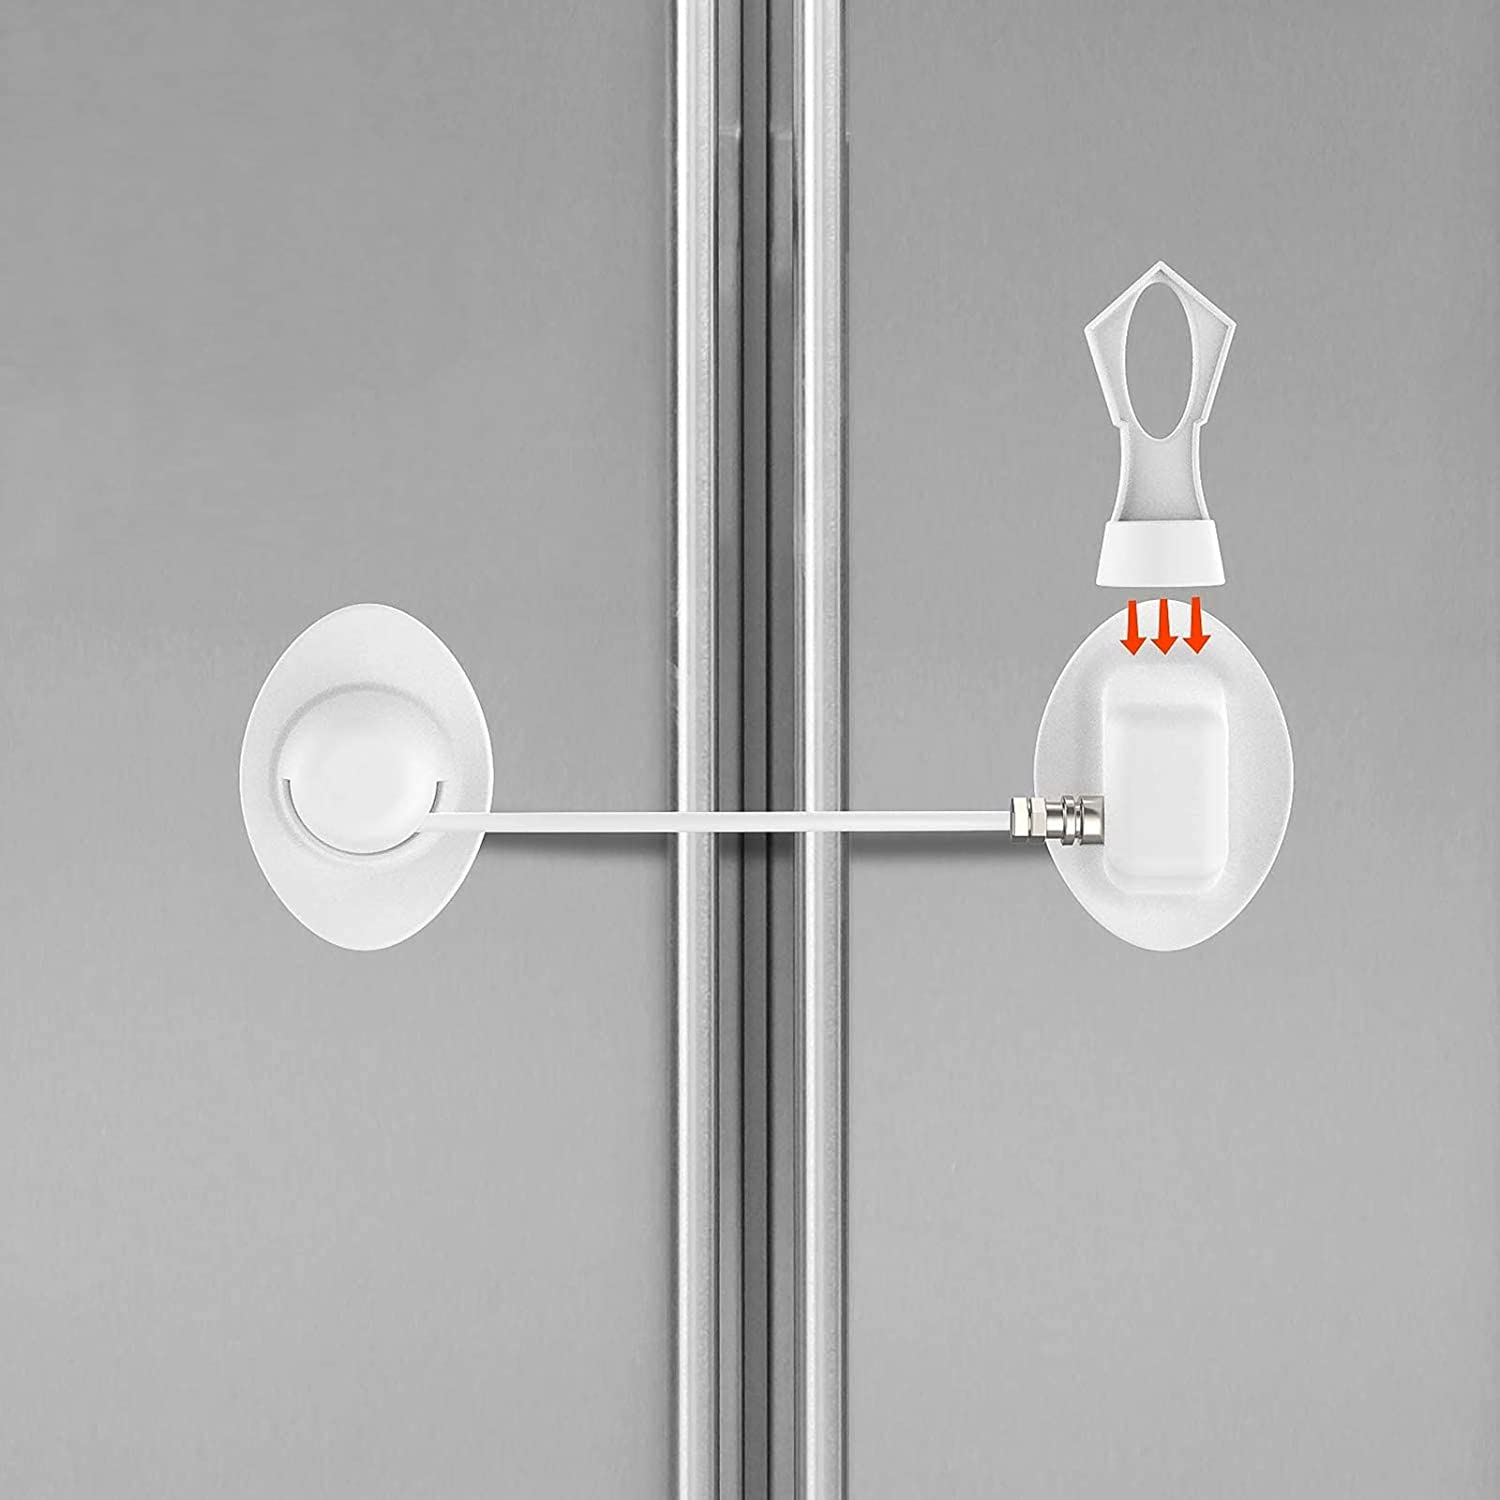 Childproof Fridge Lock with Magnetic- Strong 3M Adhesives and Cable Refrigerator Lock Super Convenience White